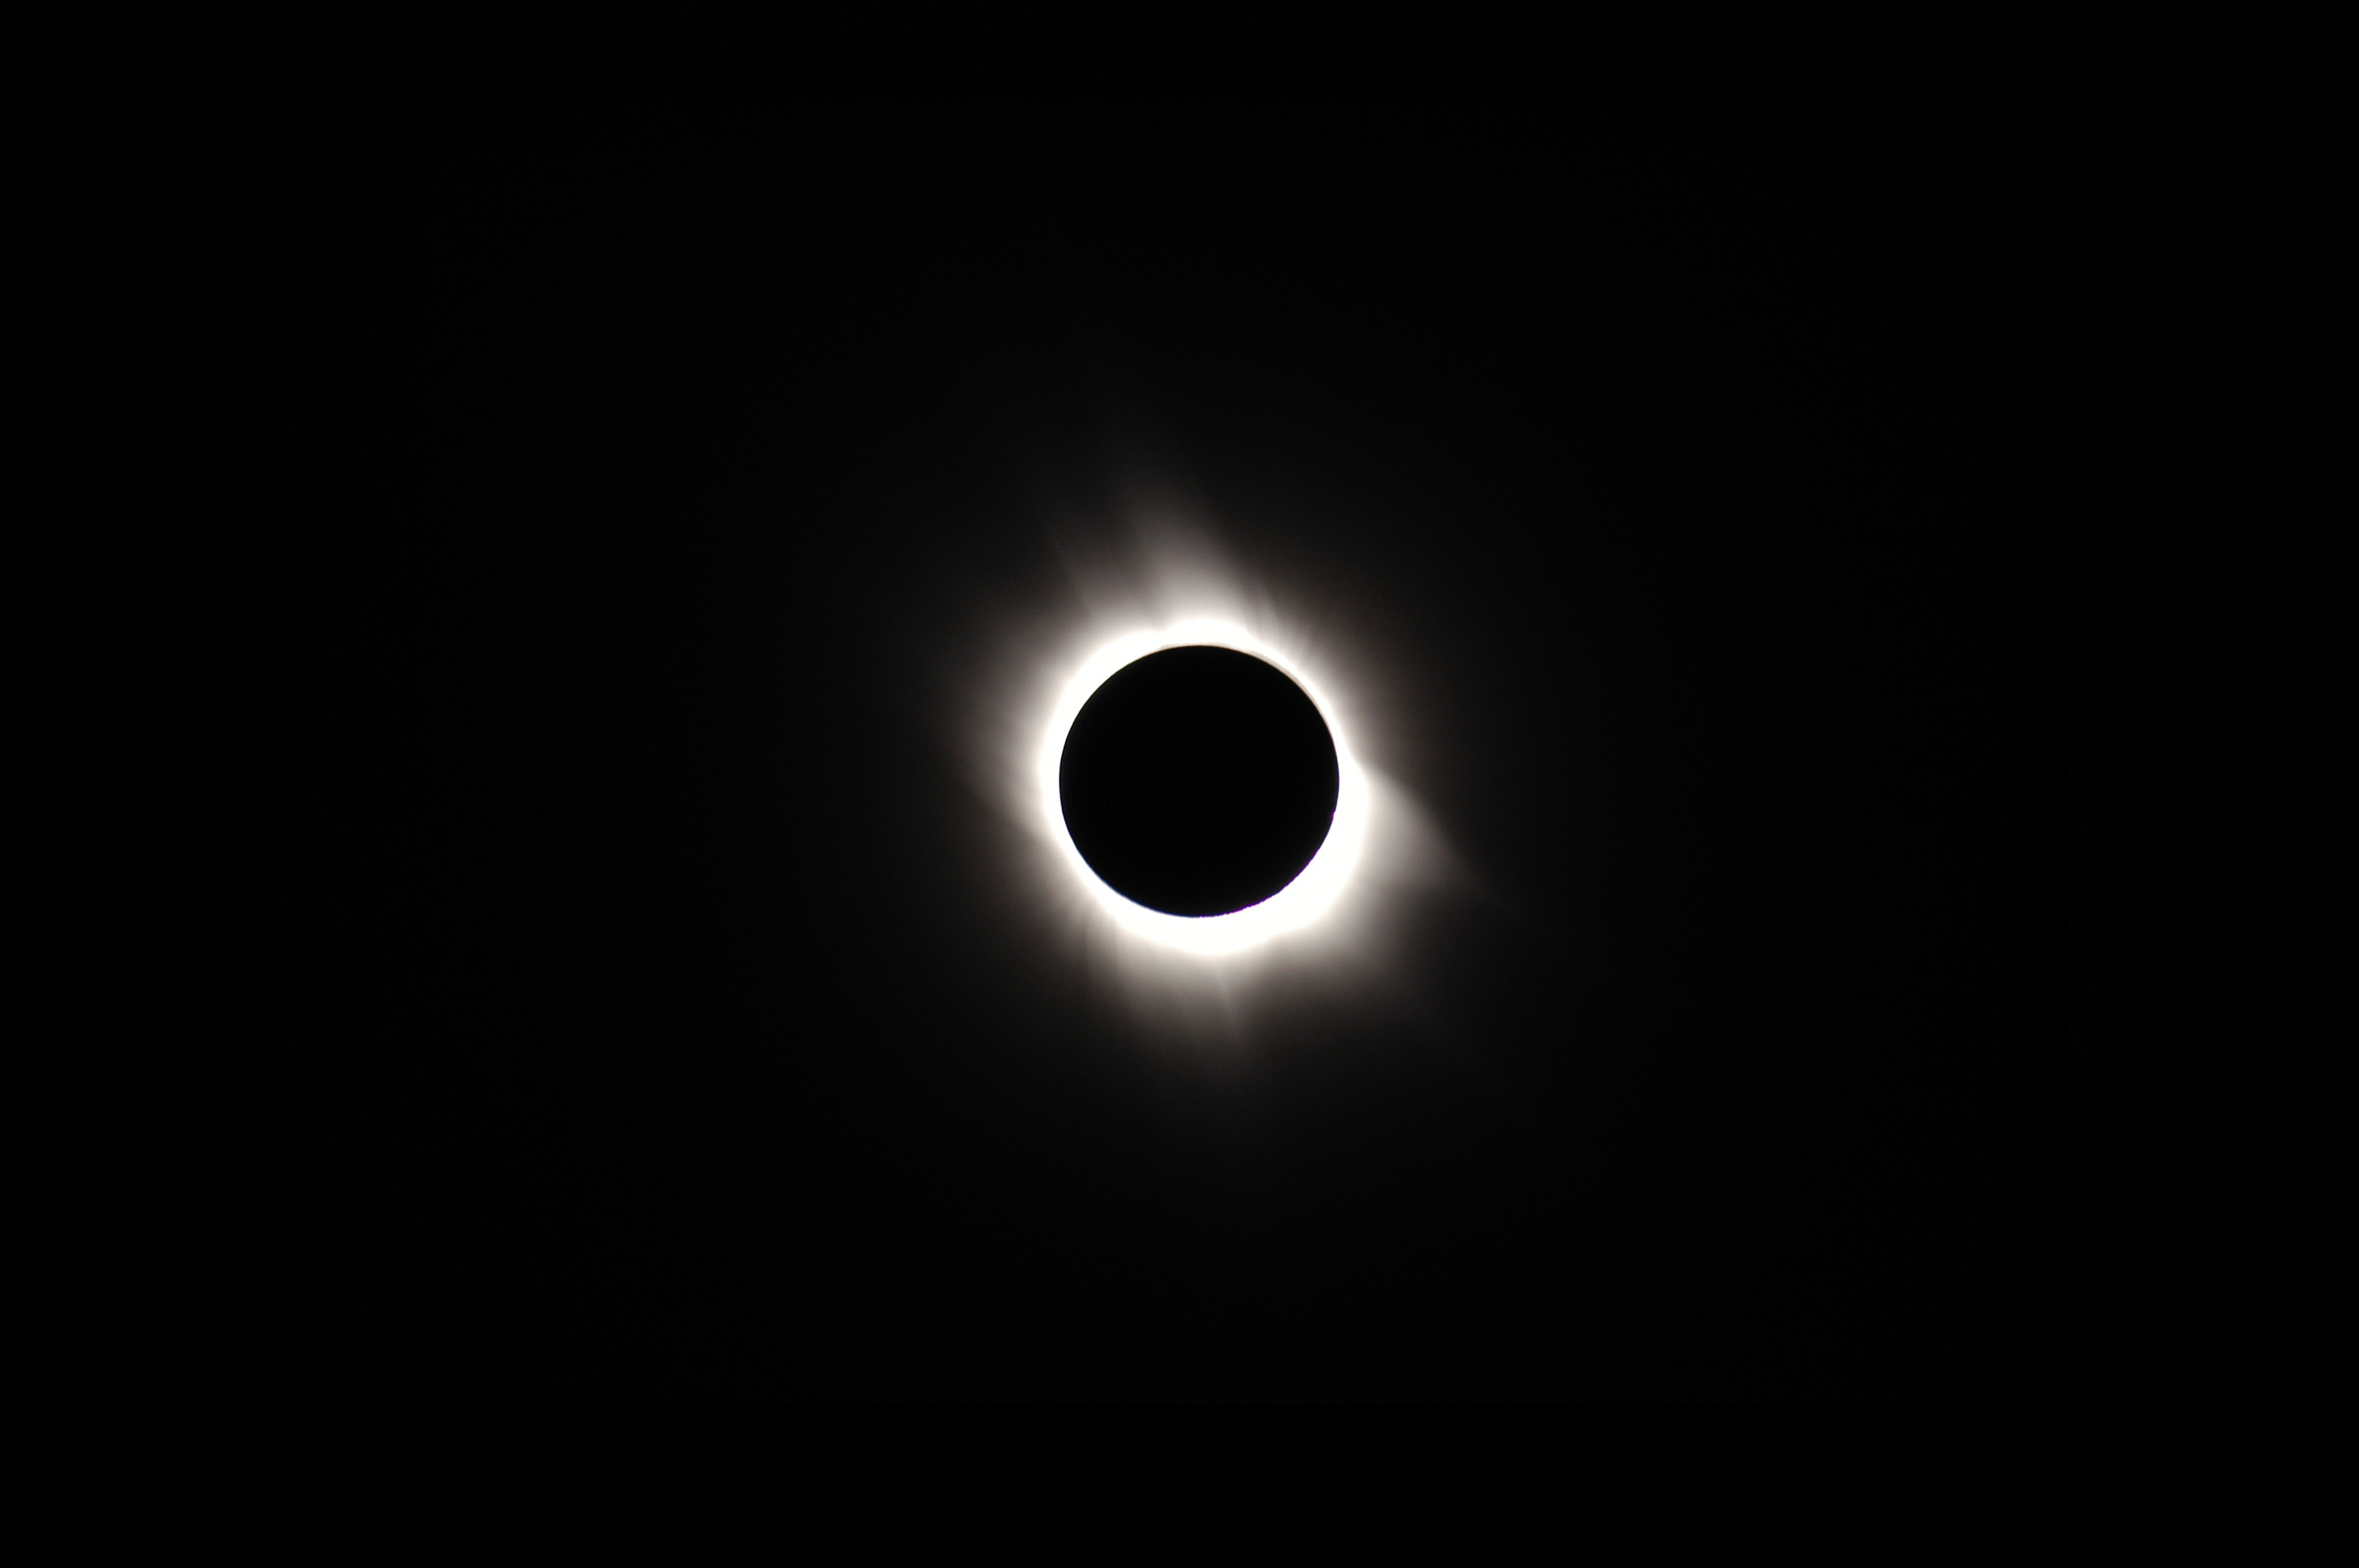 Make the total eclipse last forever with these 25 HD wallpapers